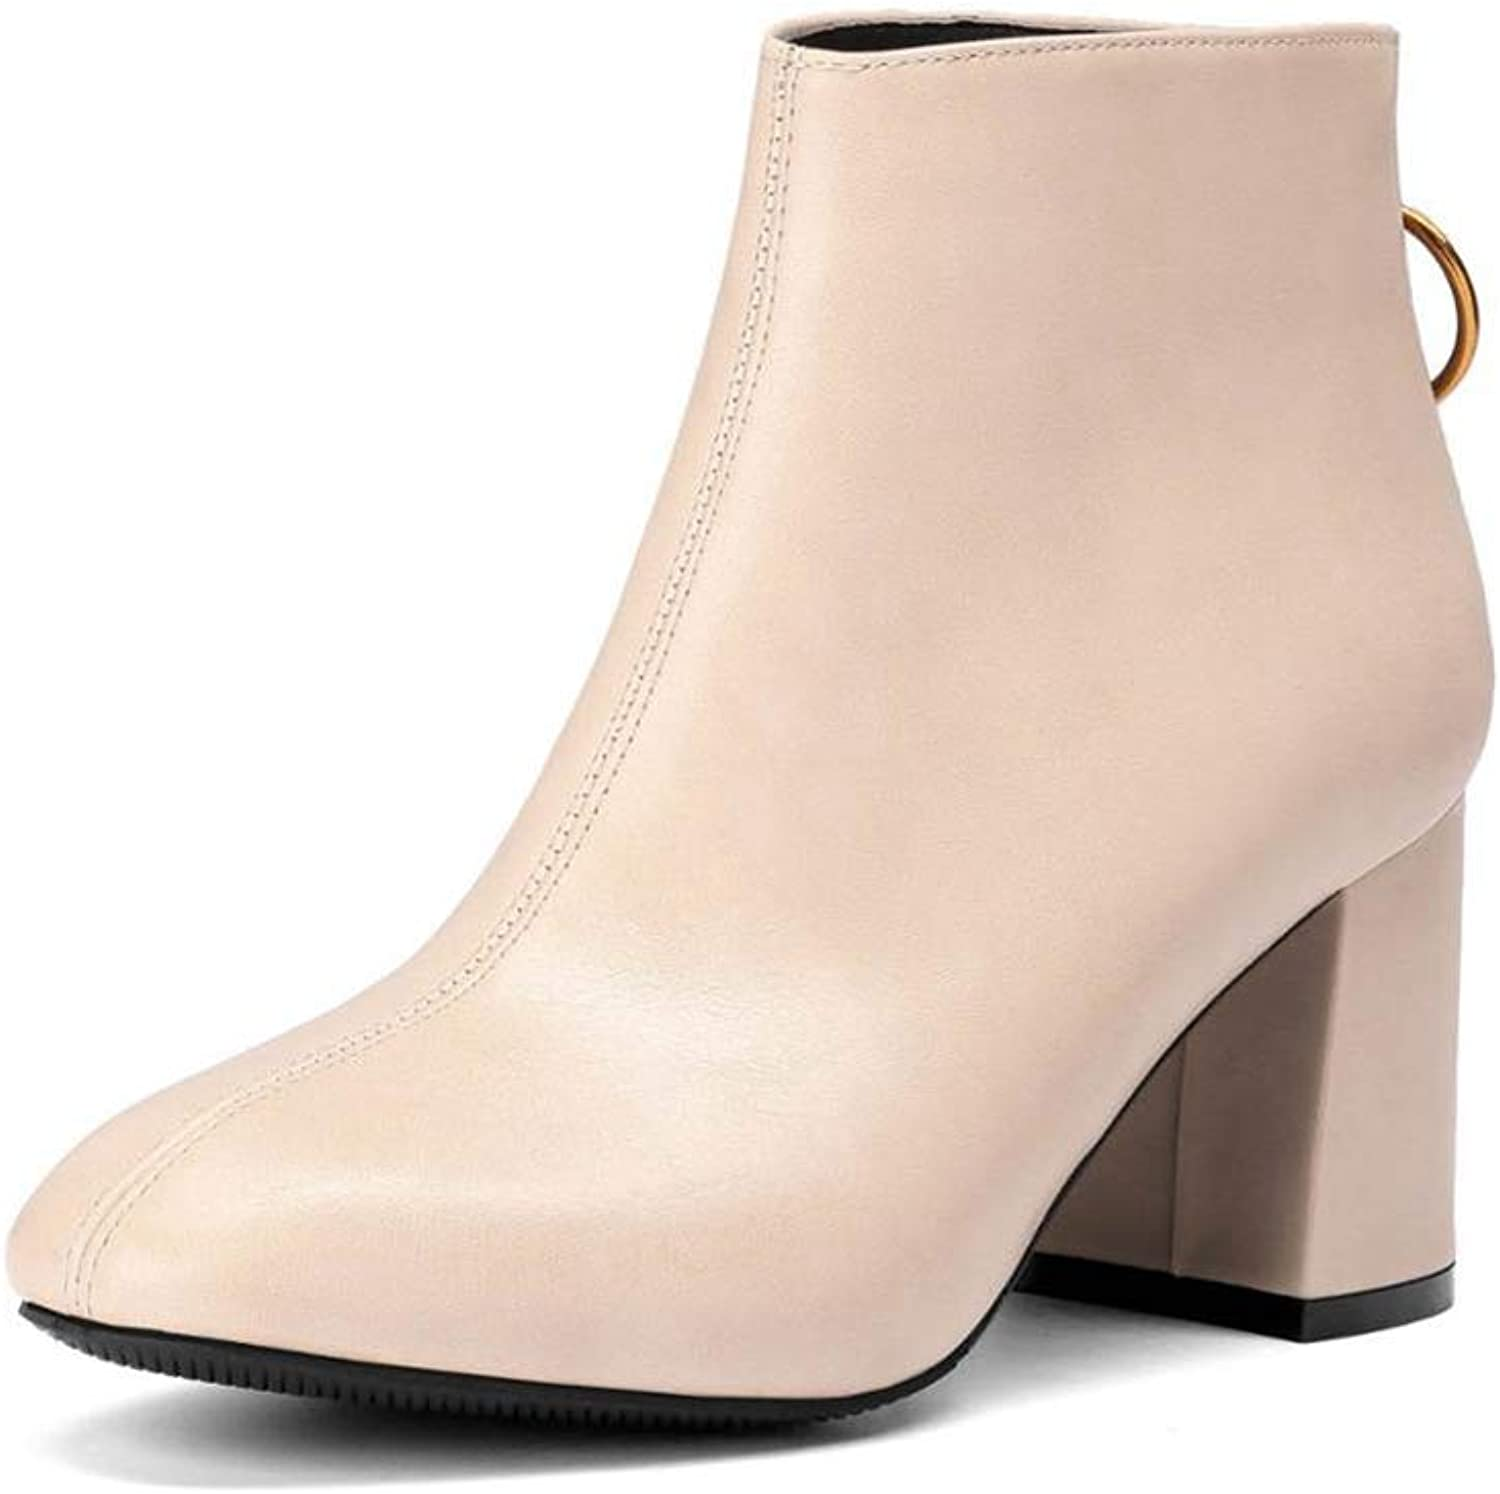 Btrada Women's Winter Ankle Boots Square High Heel Zipper Ladies Booties Fashion Simple Style Dress shoes